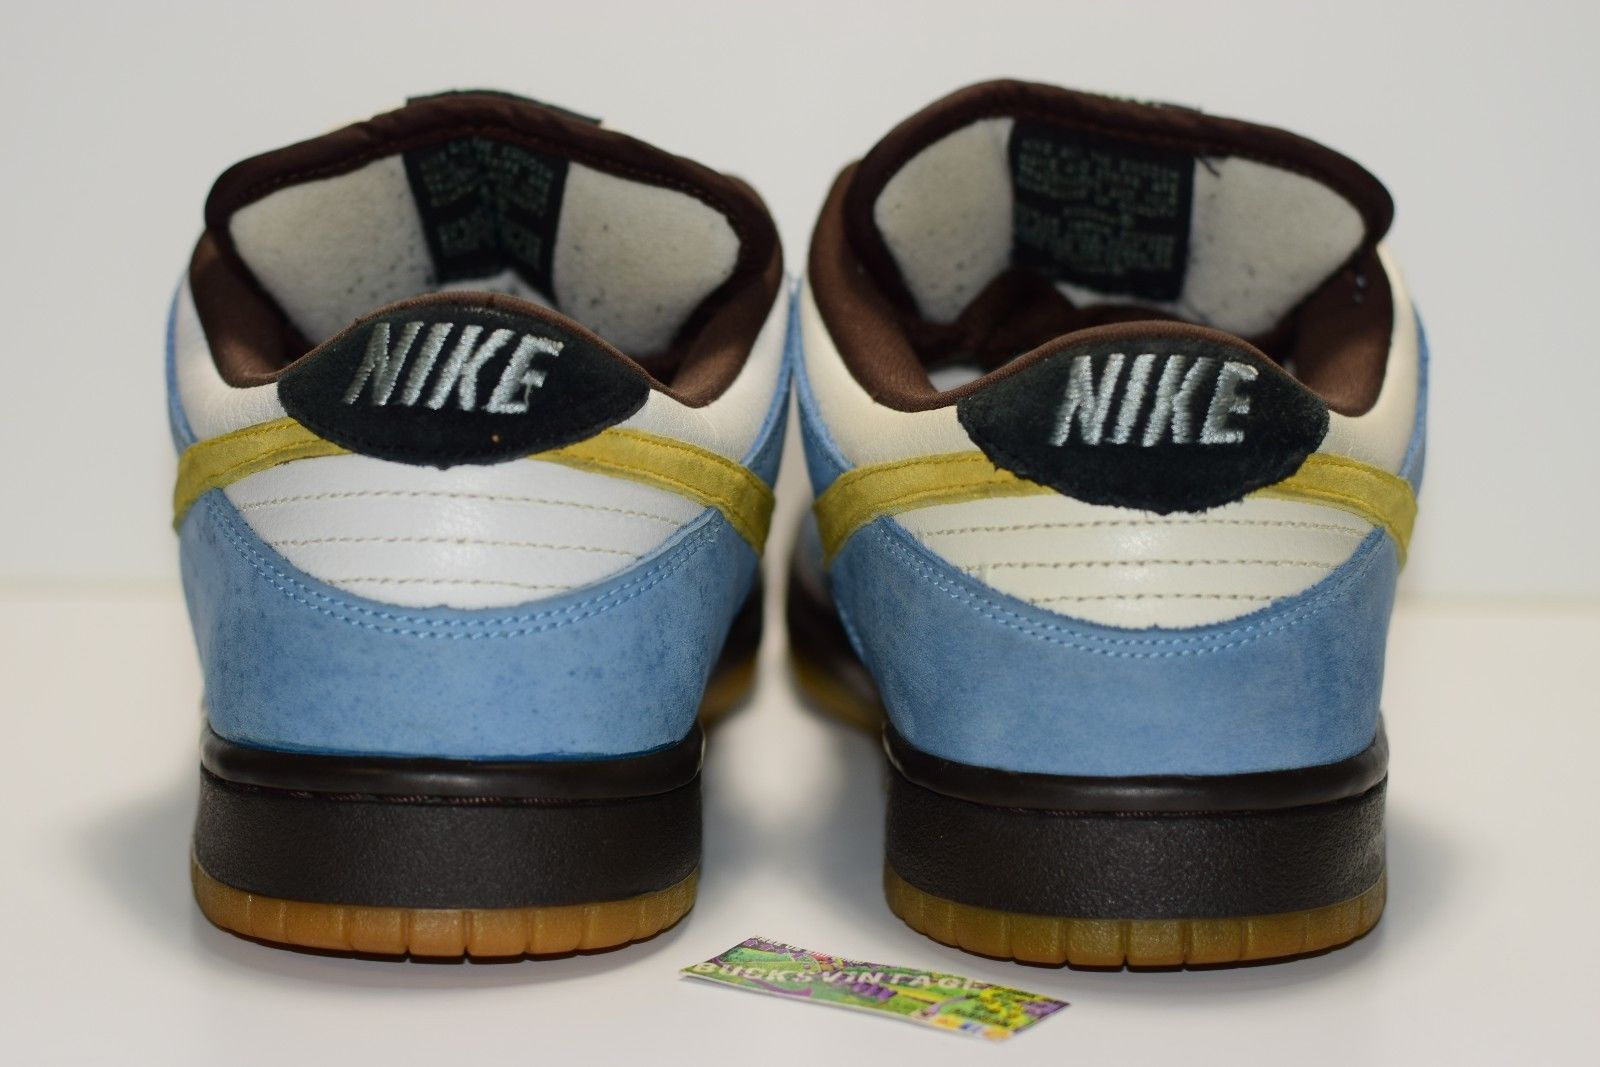 los angeles 6317f f0aae ... Size 10  2004 Nike Dunk Low Pro SB HOMER Authentic 304292-173 -  Thumbnail ...